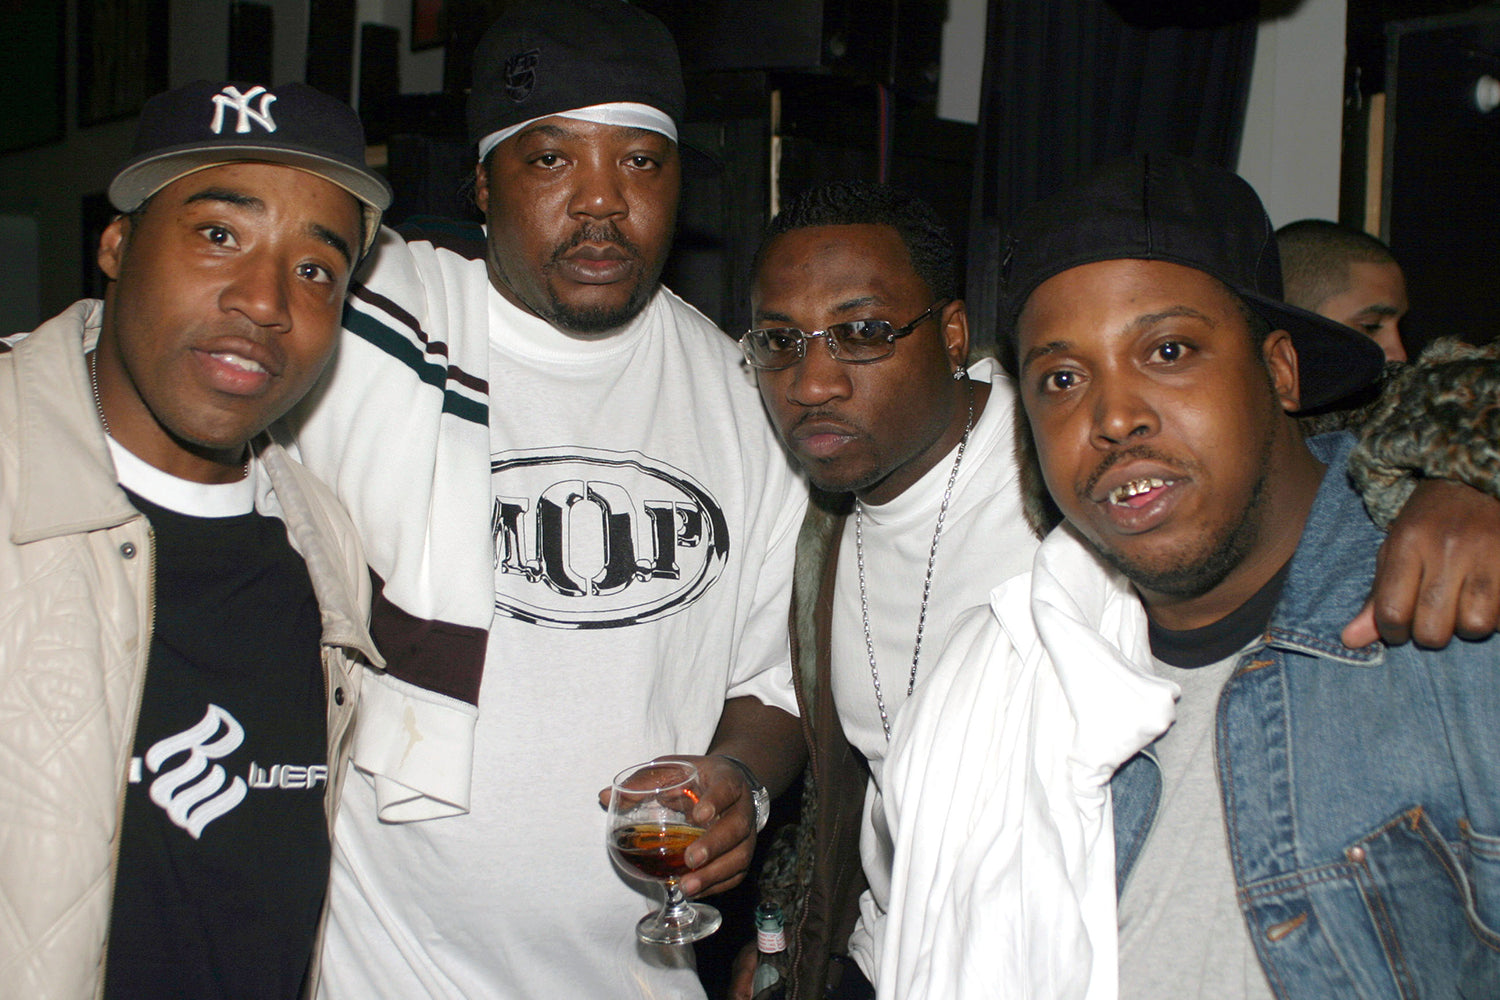 Positive K, Billy Danze of M.O.P., Scoob Lover and Lil' Fame of M.O.P. (Photo by Johnny Nunez/WireImage)